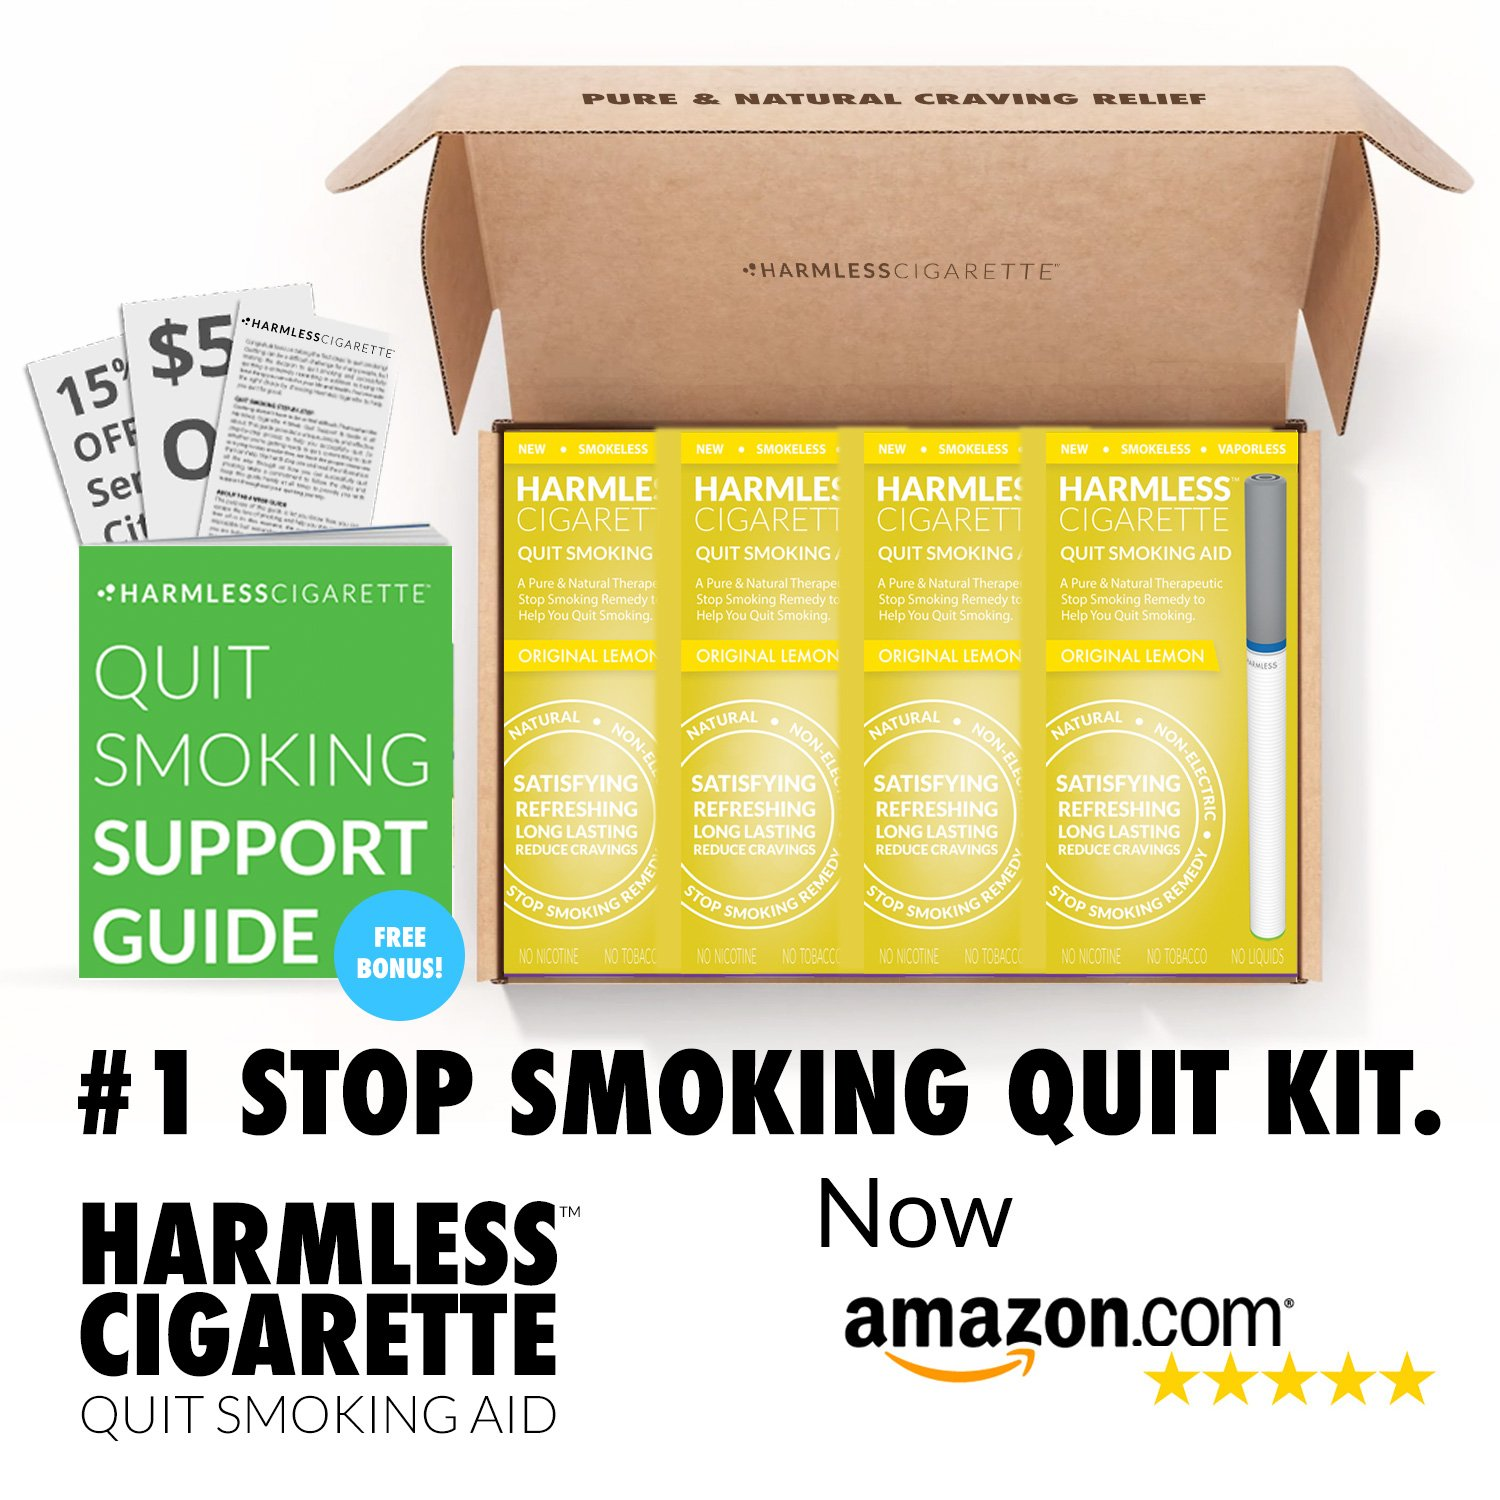 Natural Quit Smoking Aid/Satisfy Cravings & Reduce Cravings/Safe & Effective Habit Replacement/FREE Support Guide Included (4 Pack Quit Kit, Original Lemon)